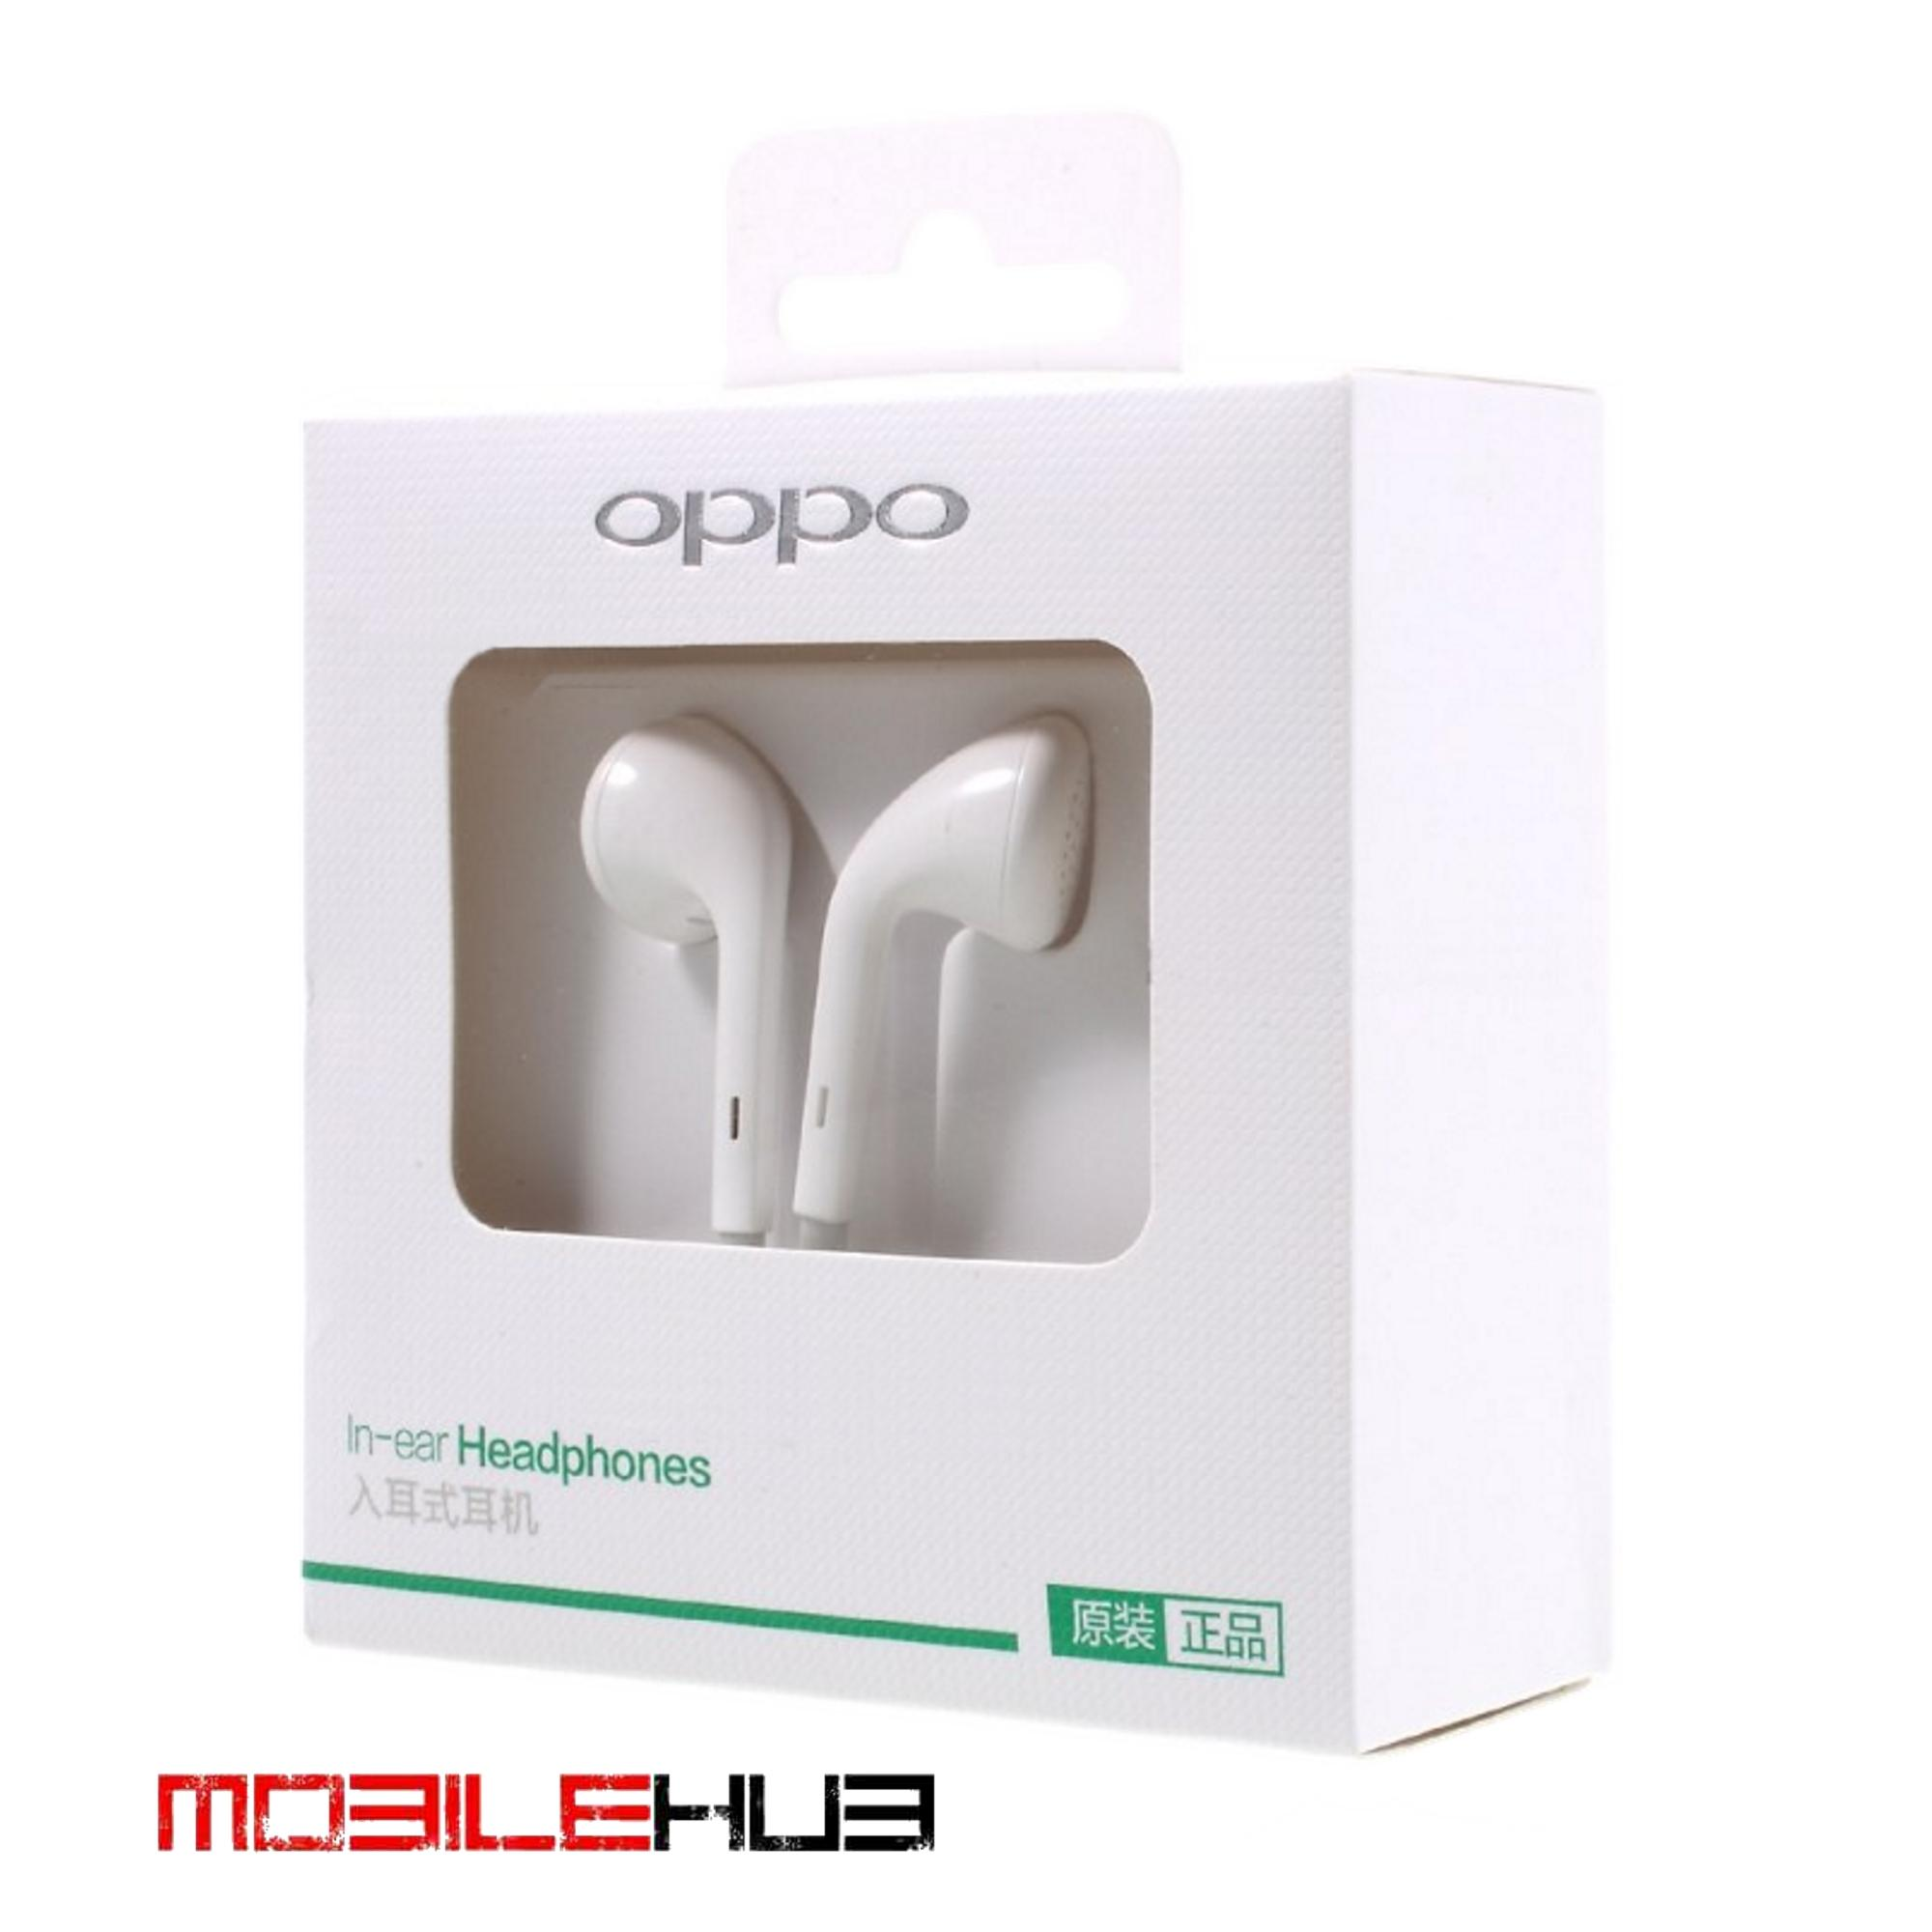 20e0434d758 In-ear Headphone for sale - In-ear Headphones prices, brands & specs ...